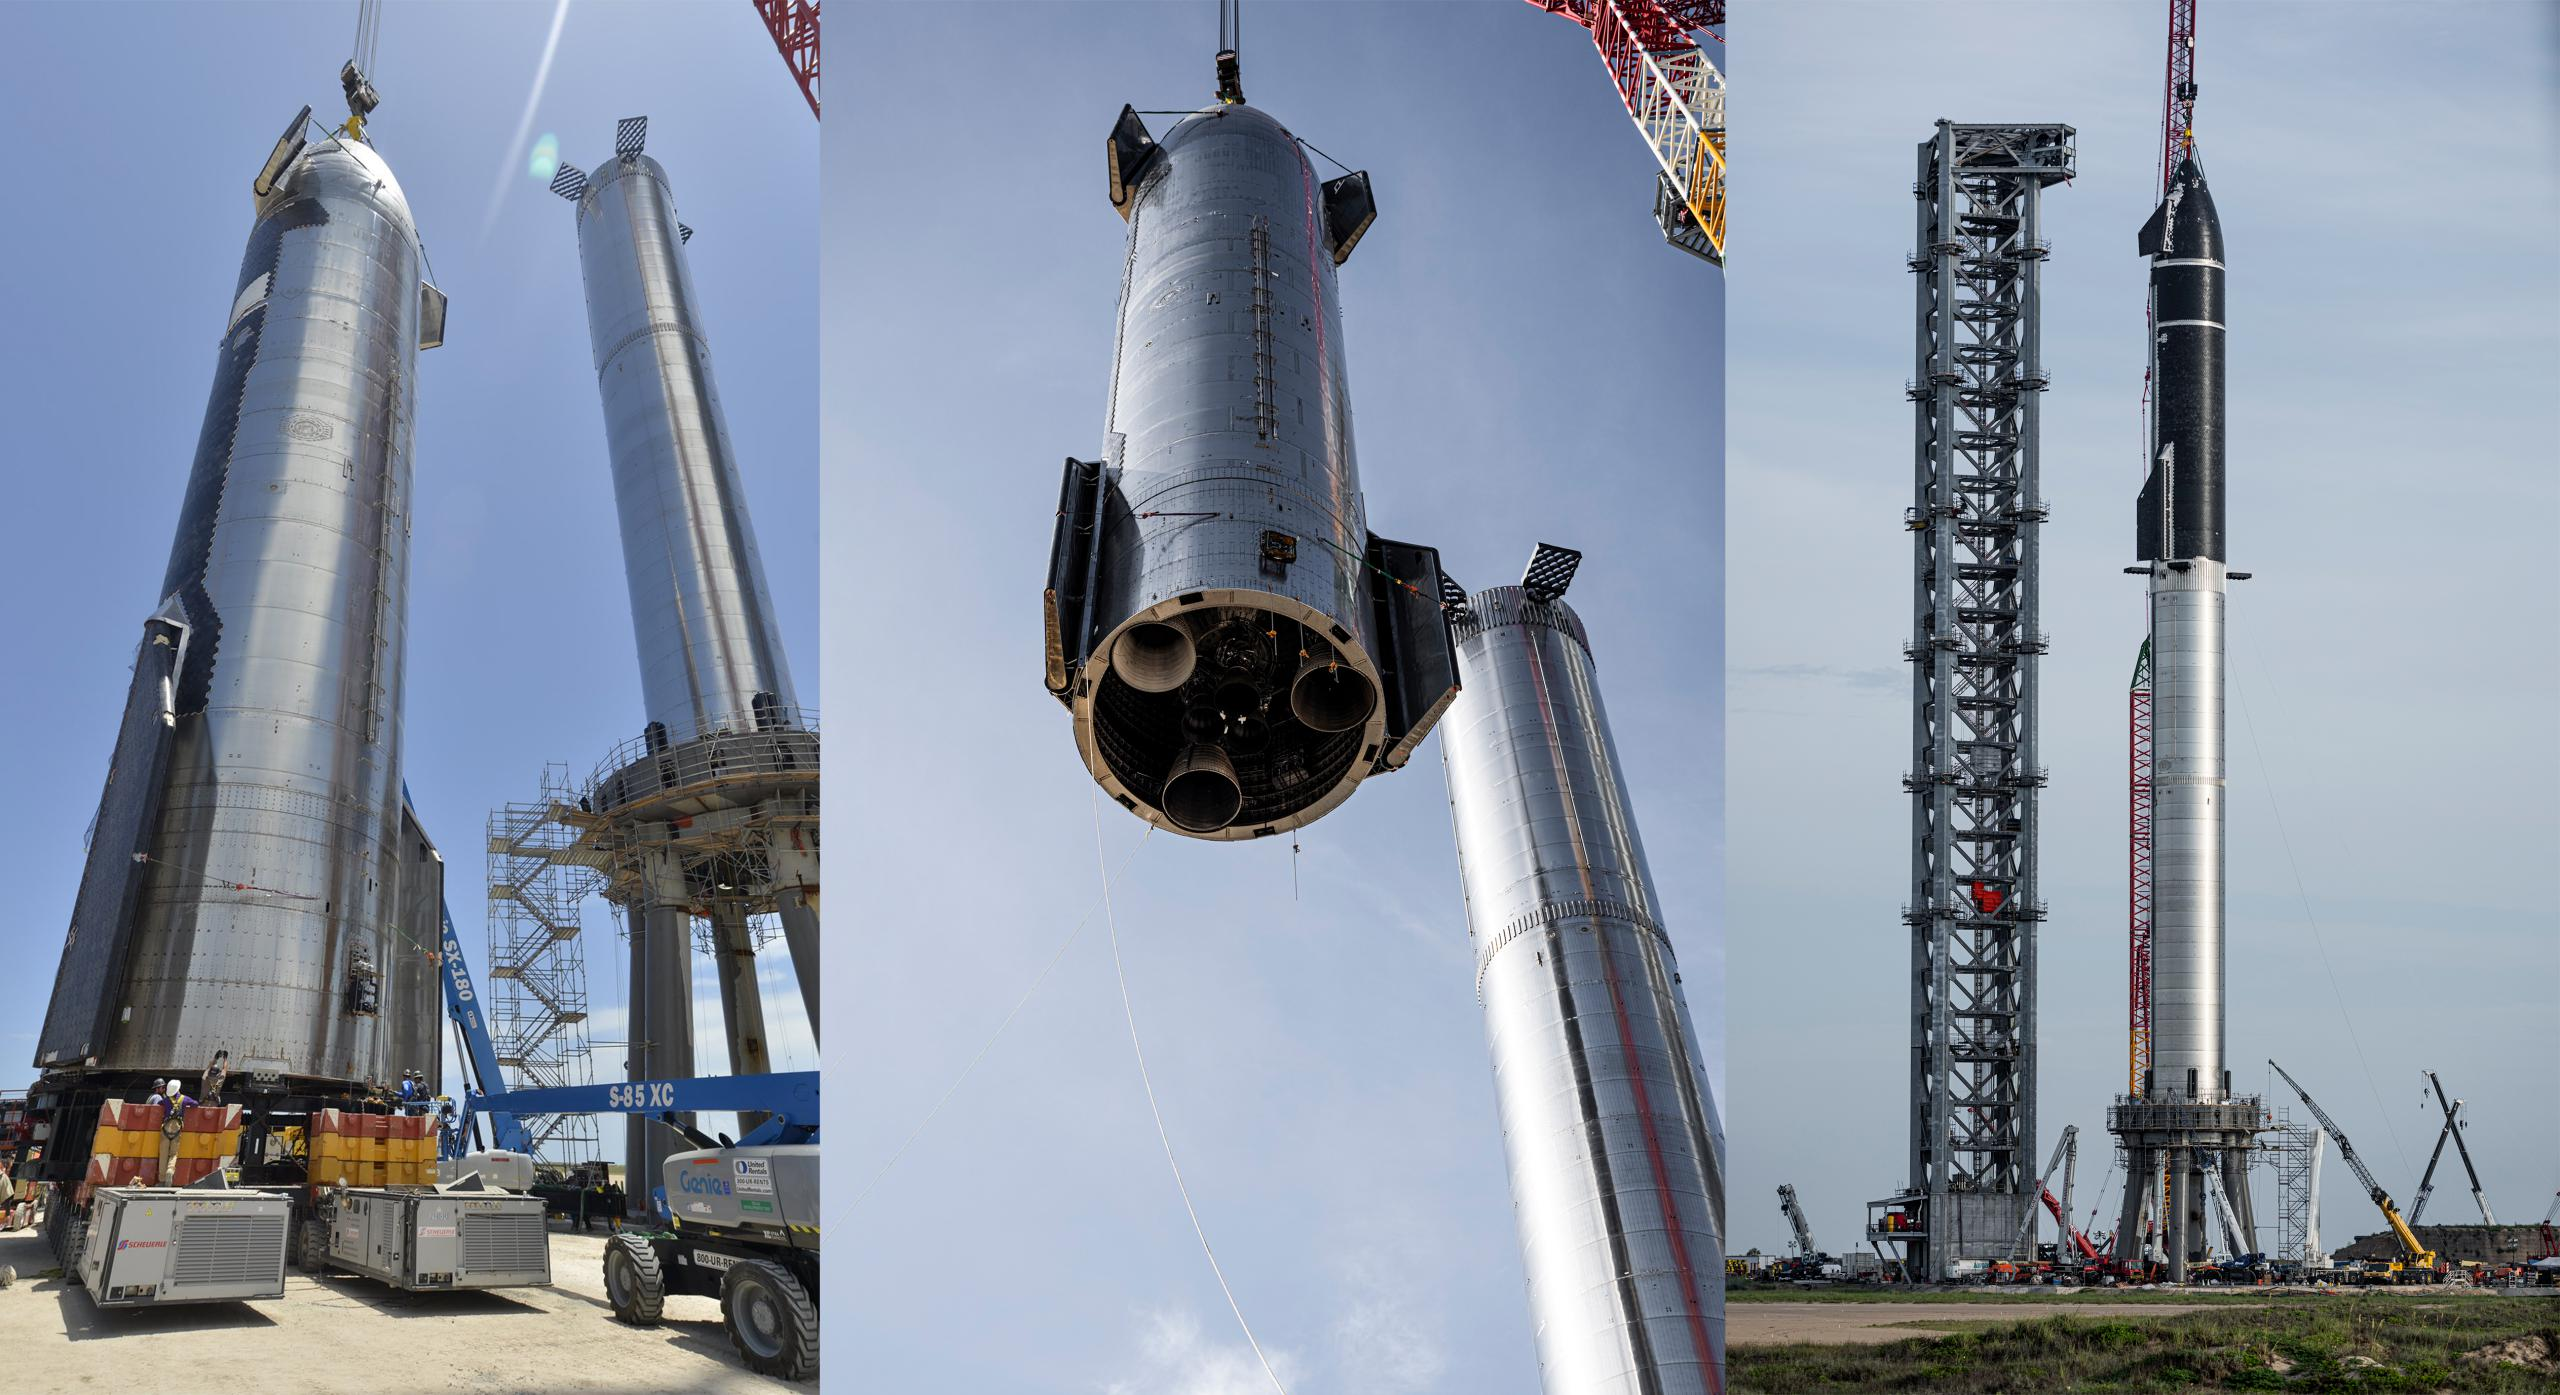 Super Heavy B4 Starship S20 fit check 080621 (SpaceX) panle 1 (c)